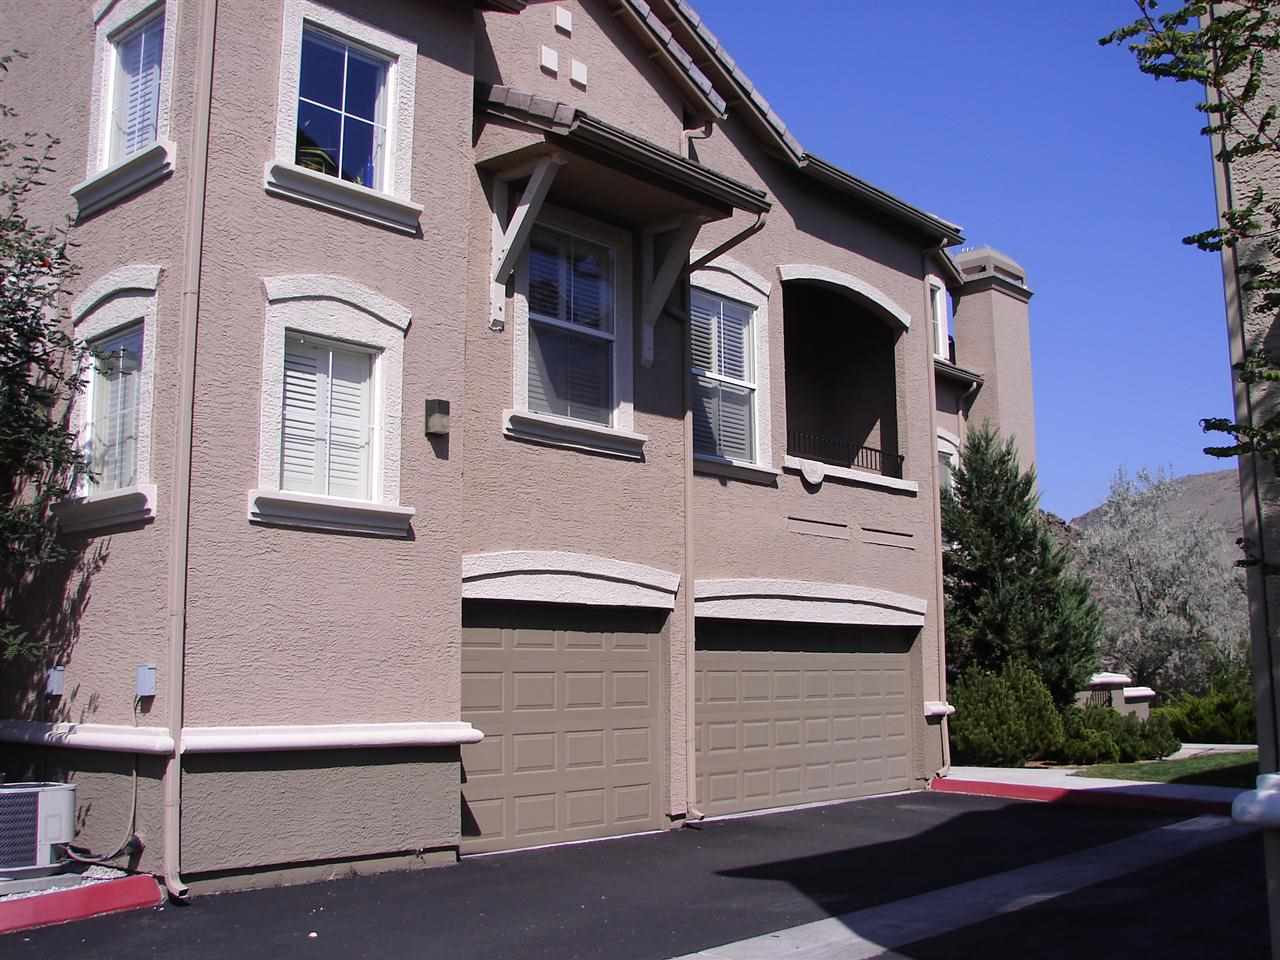 Condominio por un Venta en 9050 Double R Blvd #725 ,Washoe 9050 Double R Blvd #725 Reno, Nevada 89511 Estados Unidos